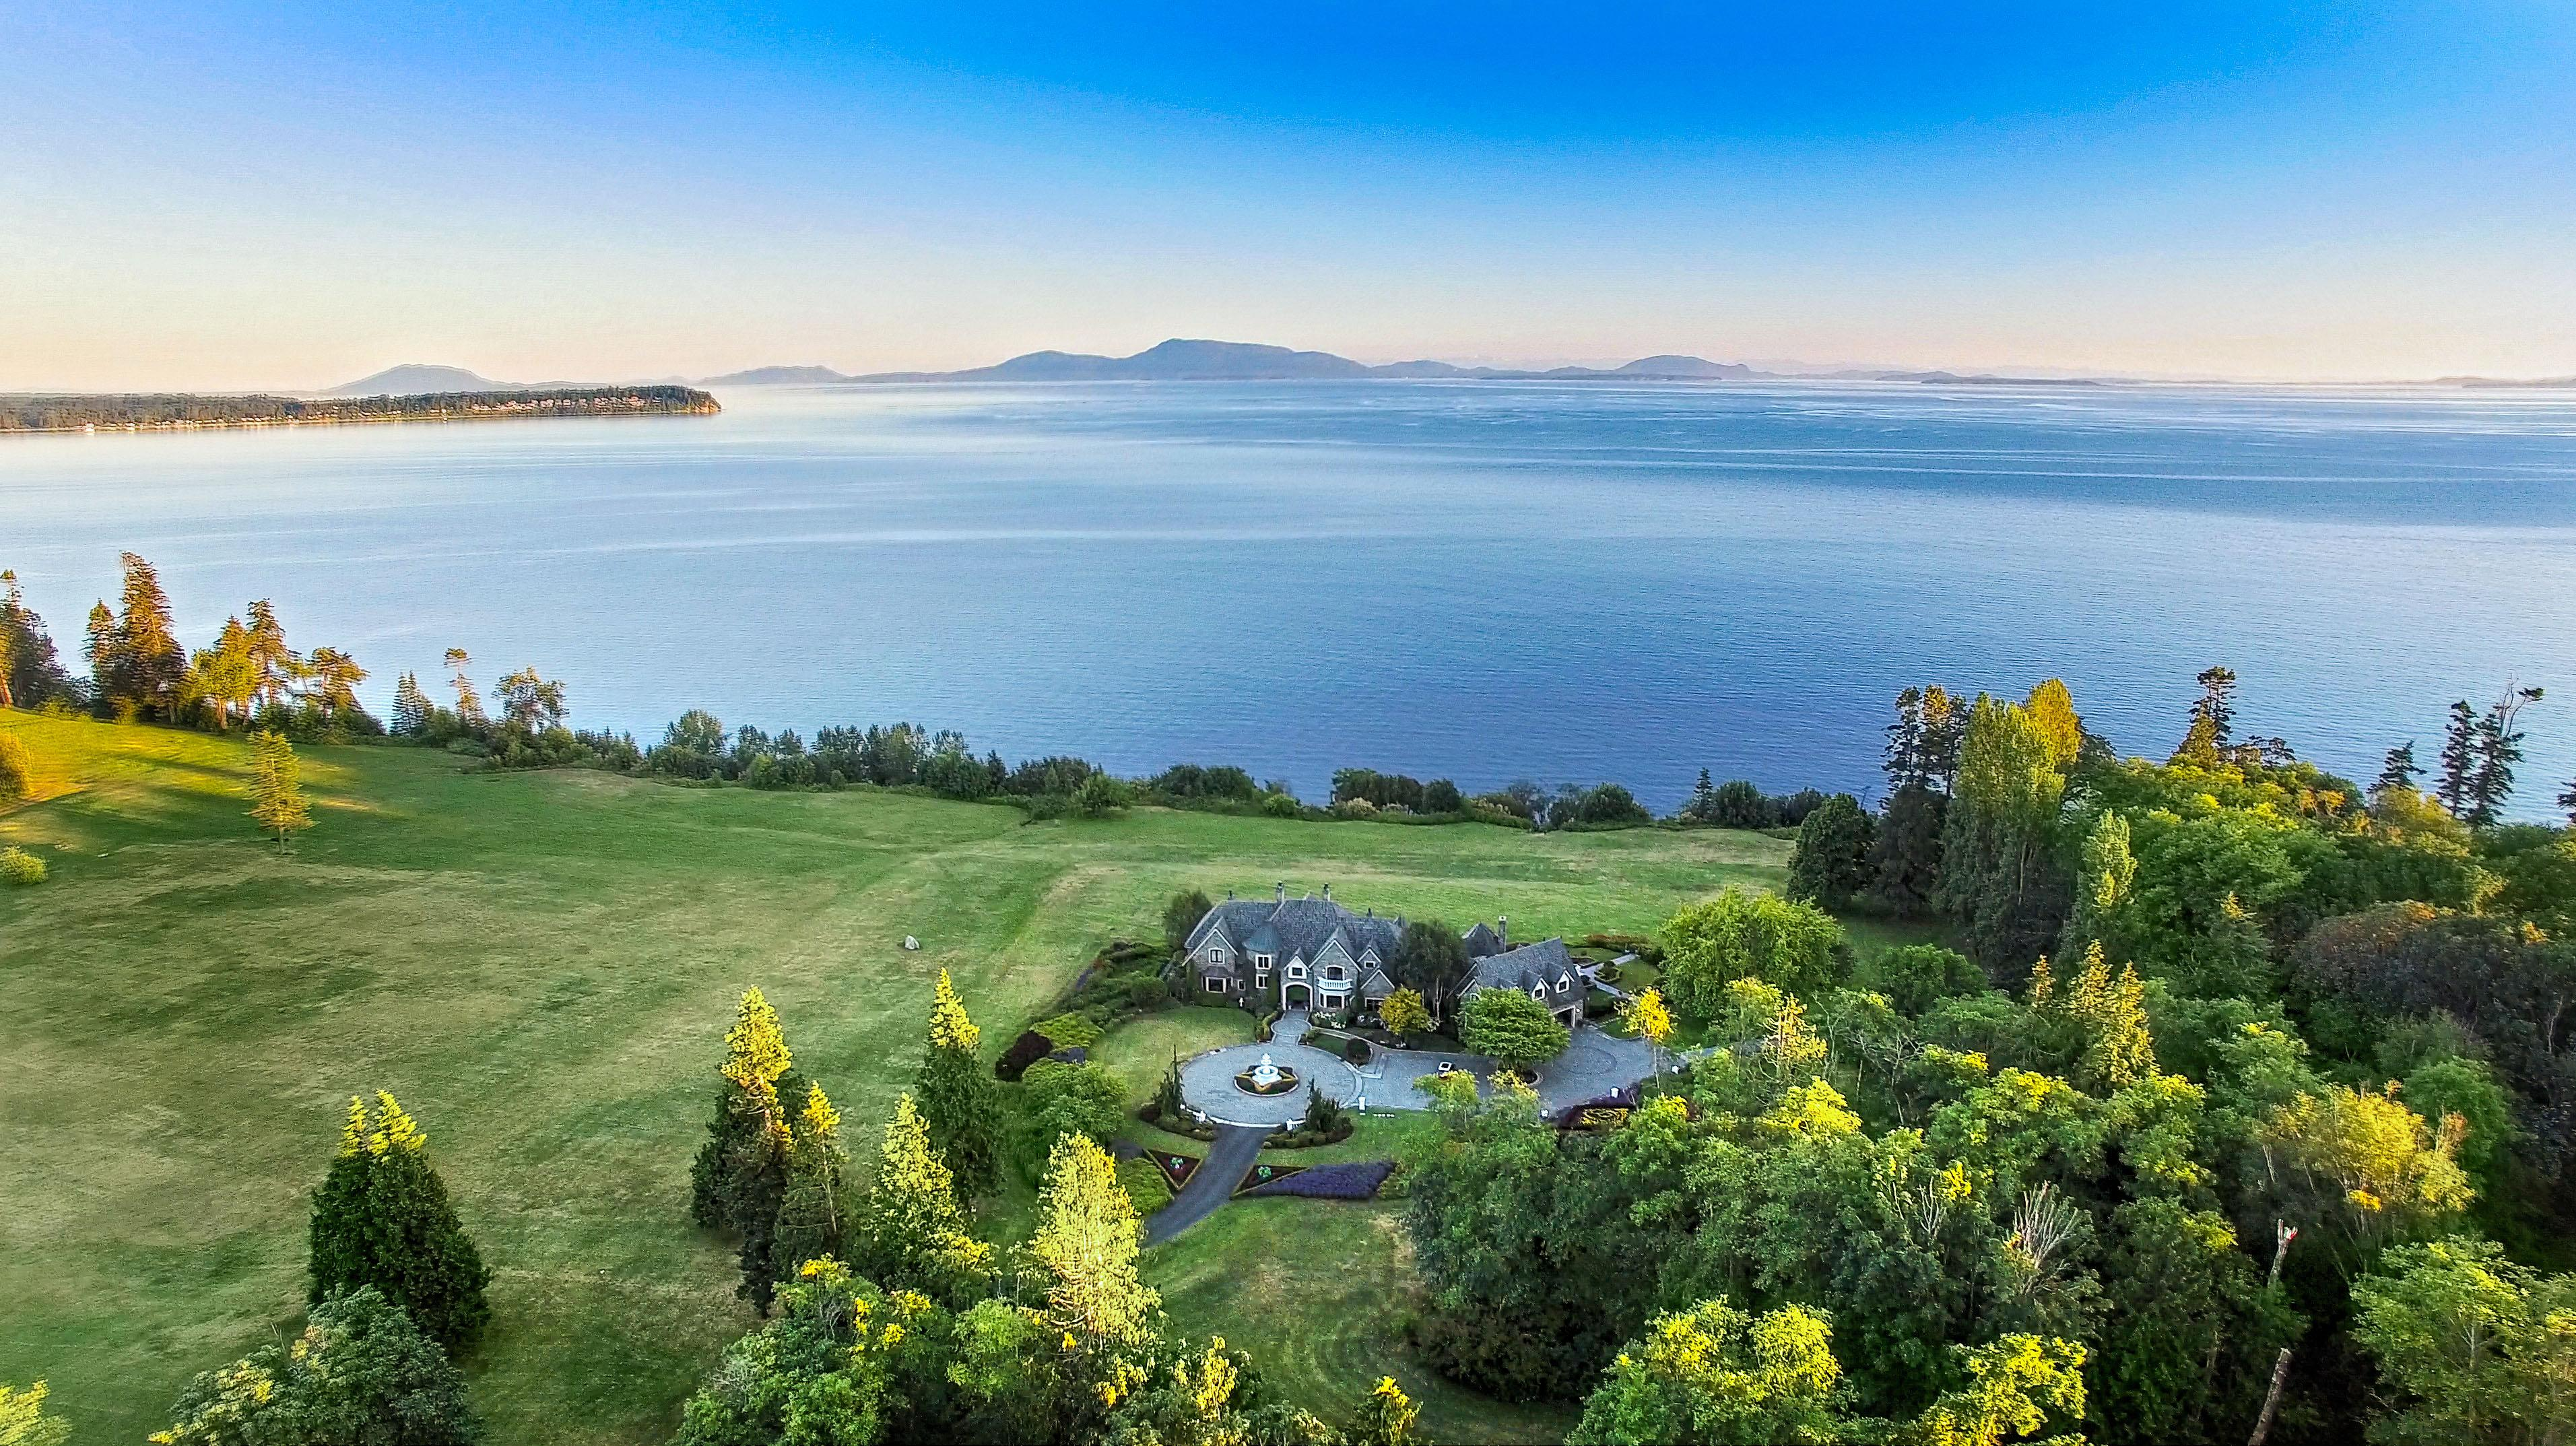 This 12,000-square-foot home on the Strait of Georgia is magnificent, but those who appreciate Washington's natural beauty might well find the property surrounding it even more stupendous.